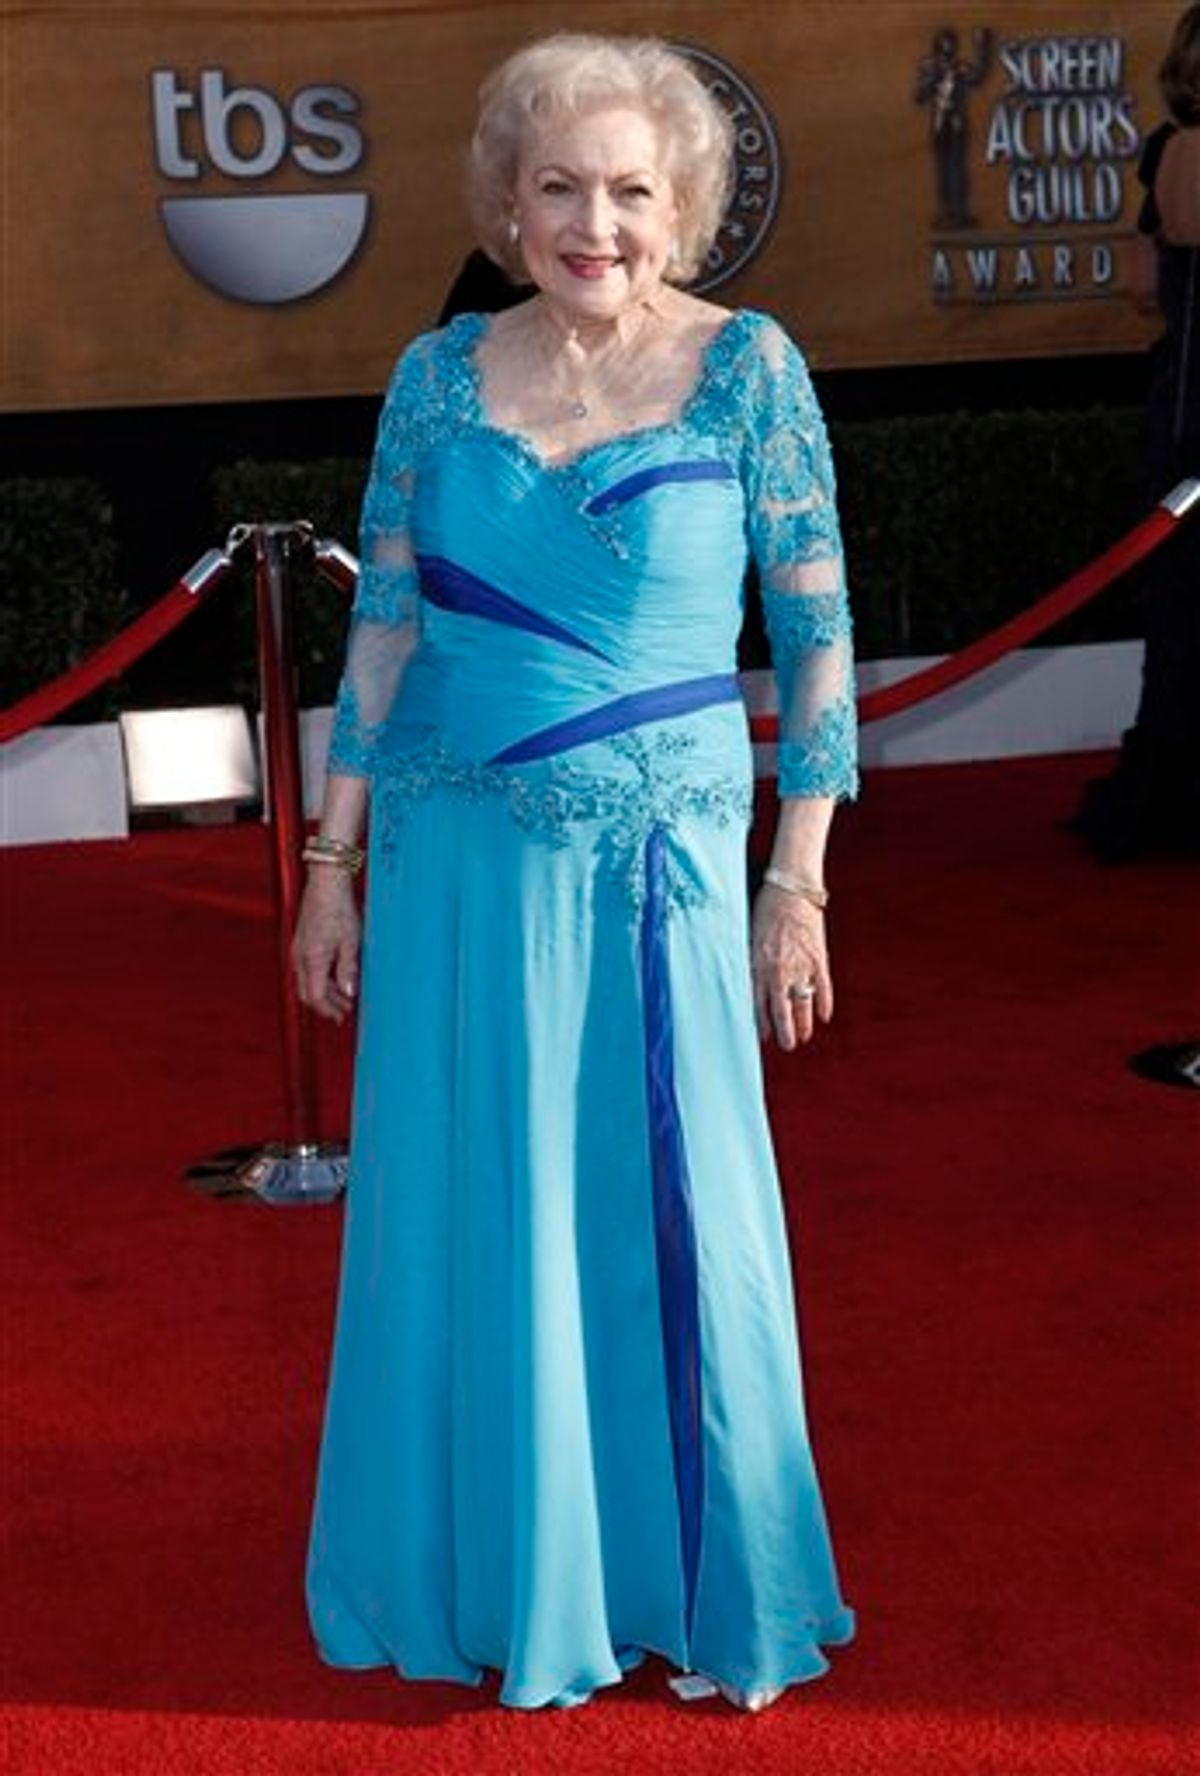 Betty White arrives at the 16th Annual Screen Actors Guild Awards on Saturday, Jan. 23, 2010, in Los Angeles.  (AP Photo/Matt Sayles) (AP)